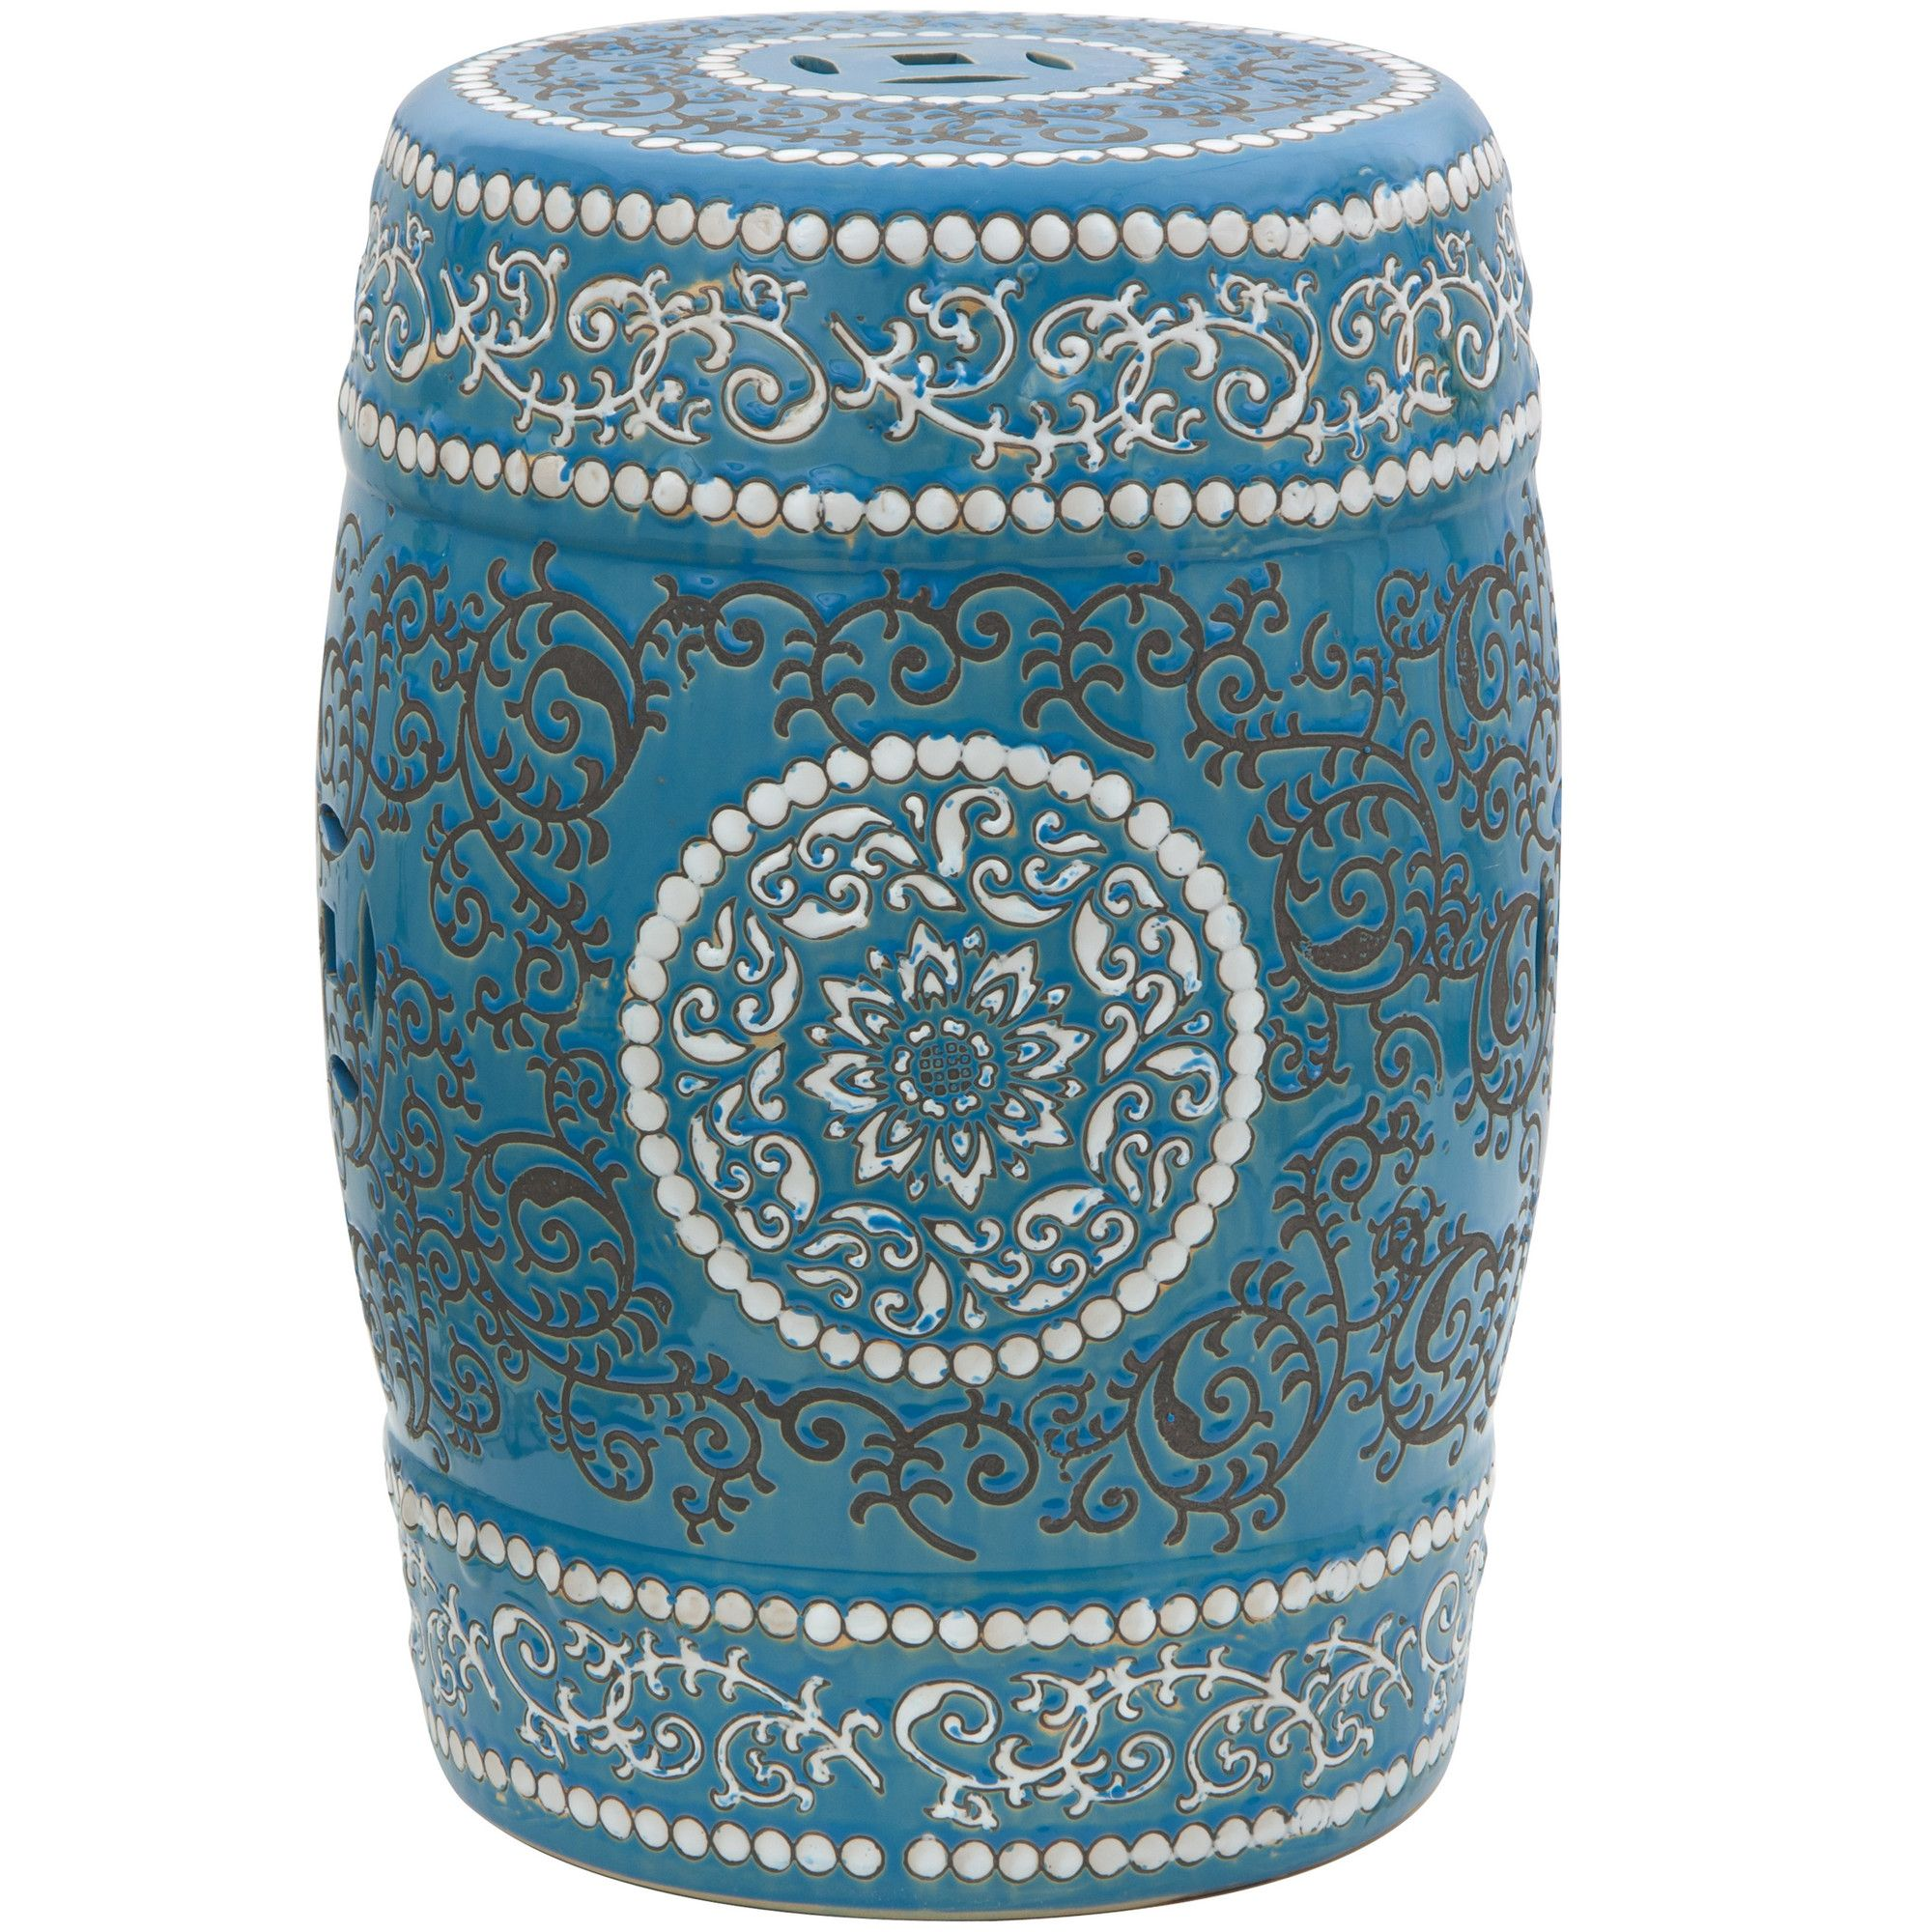 Oriental Furniture Medallion Porcelain Garden Stool | Wayfair #home #decor #lovely #inspiration #oriental #furniture